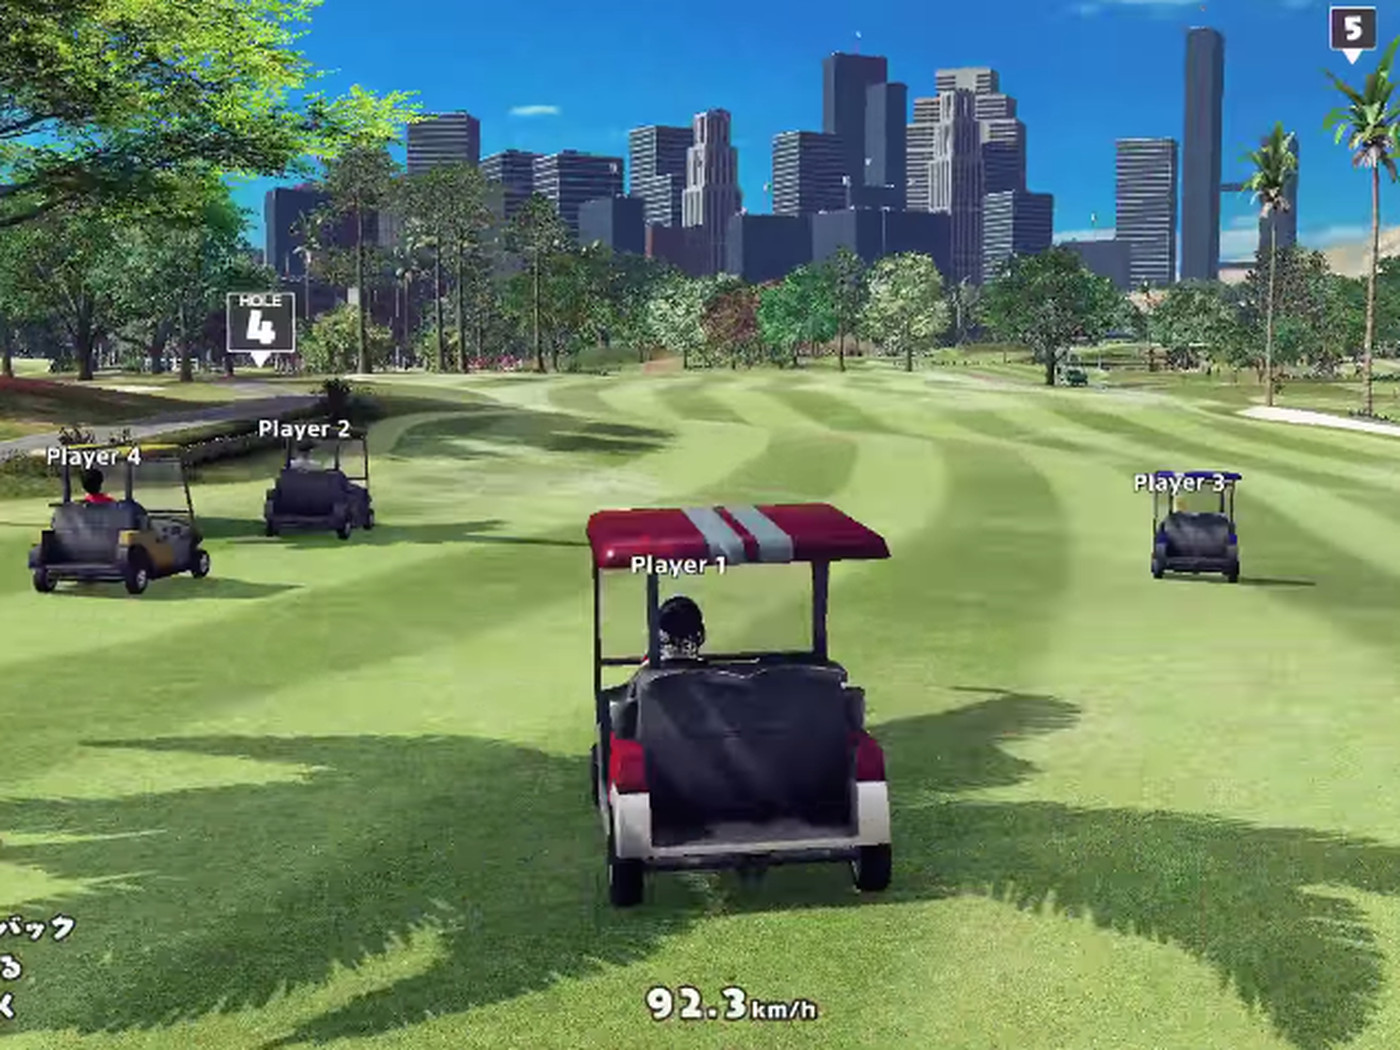 New Hot Shots Golf lets you summon a ghostly golf cart - The Verge Game Golf Carts on plow games, dune buggy games, bus games, dinner games, grill games, golf ball games, driving range games, hot tub games,